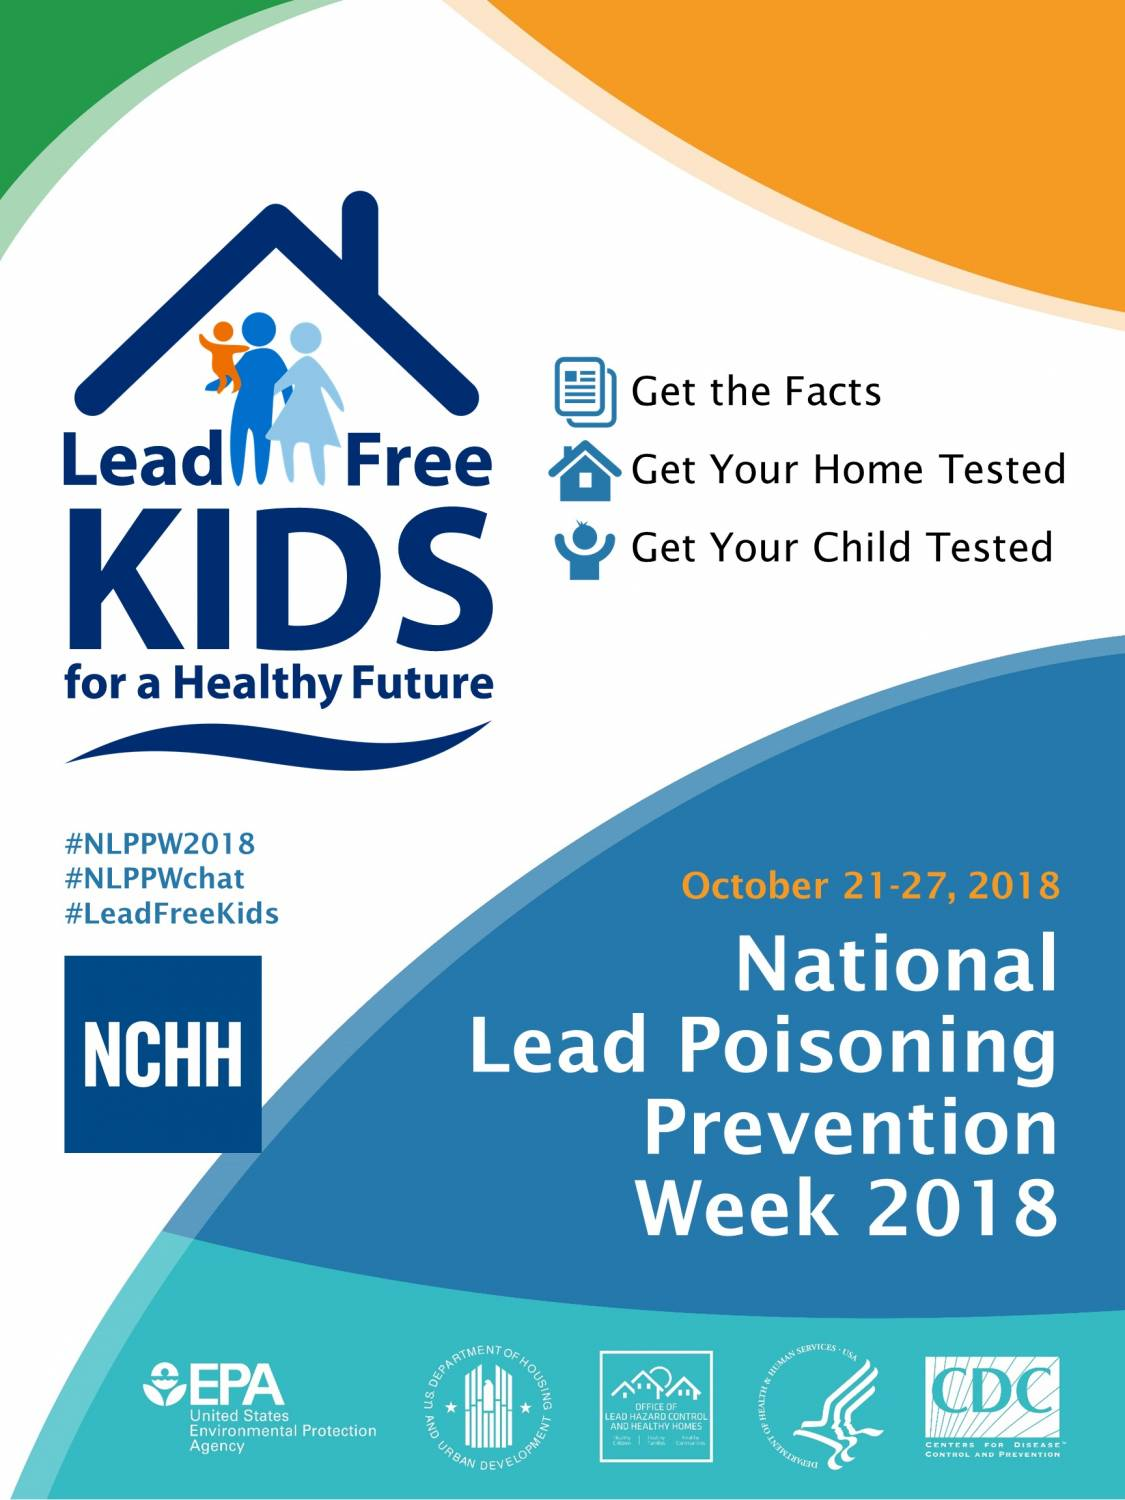 national lead poisoning prevention week nchh